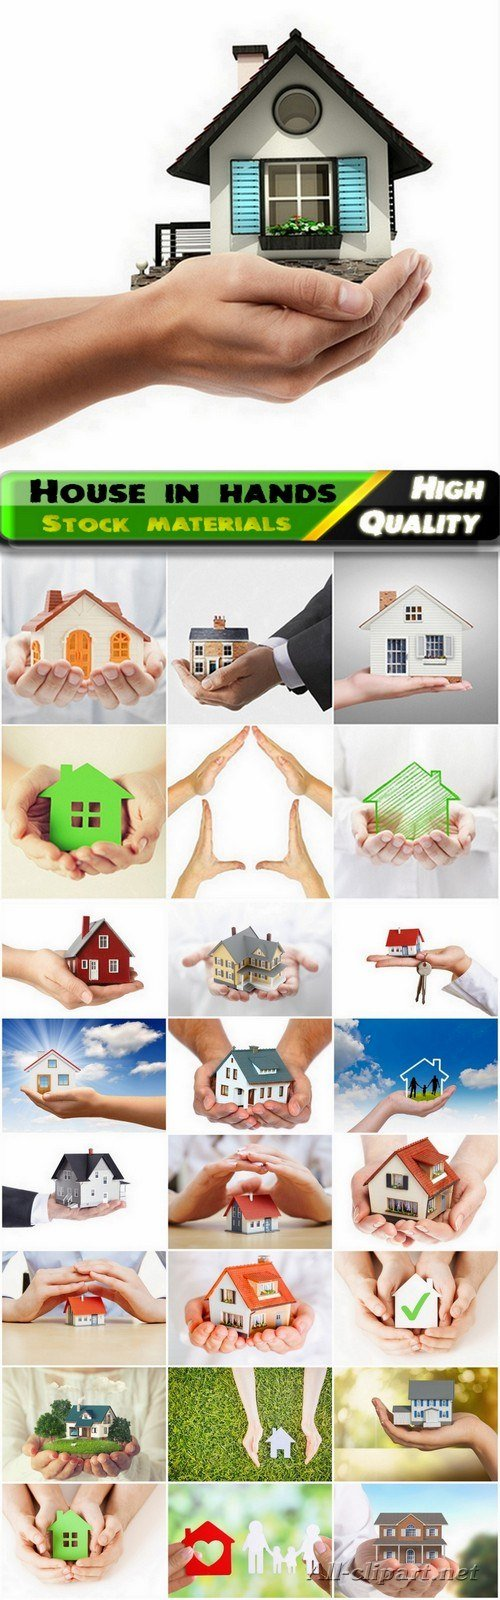 Trade in real estate and house in hands - 25 HQ Jpg